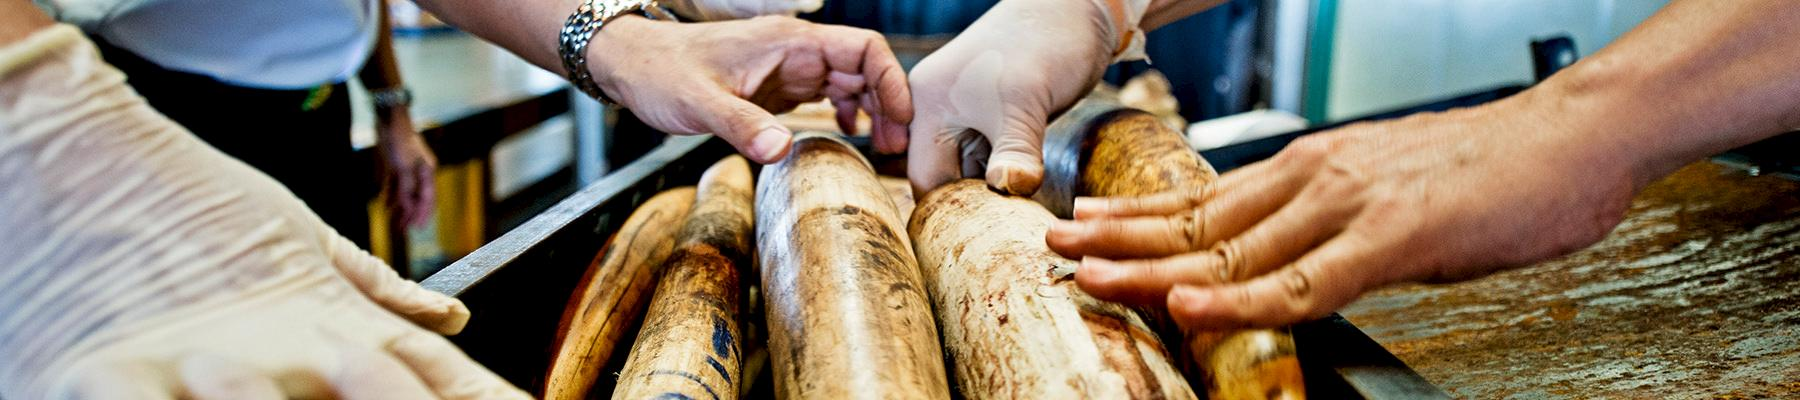 Seized Shipment of Illegal African Elephant Tusks, Thailand. © WWF / James Morgan